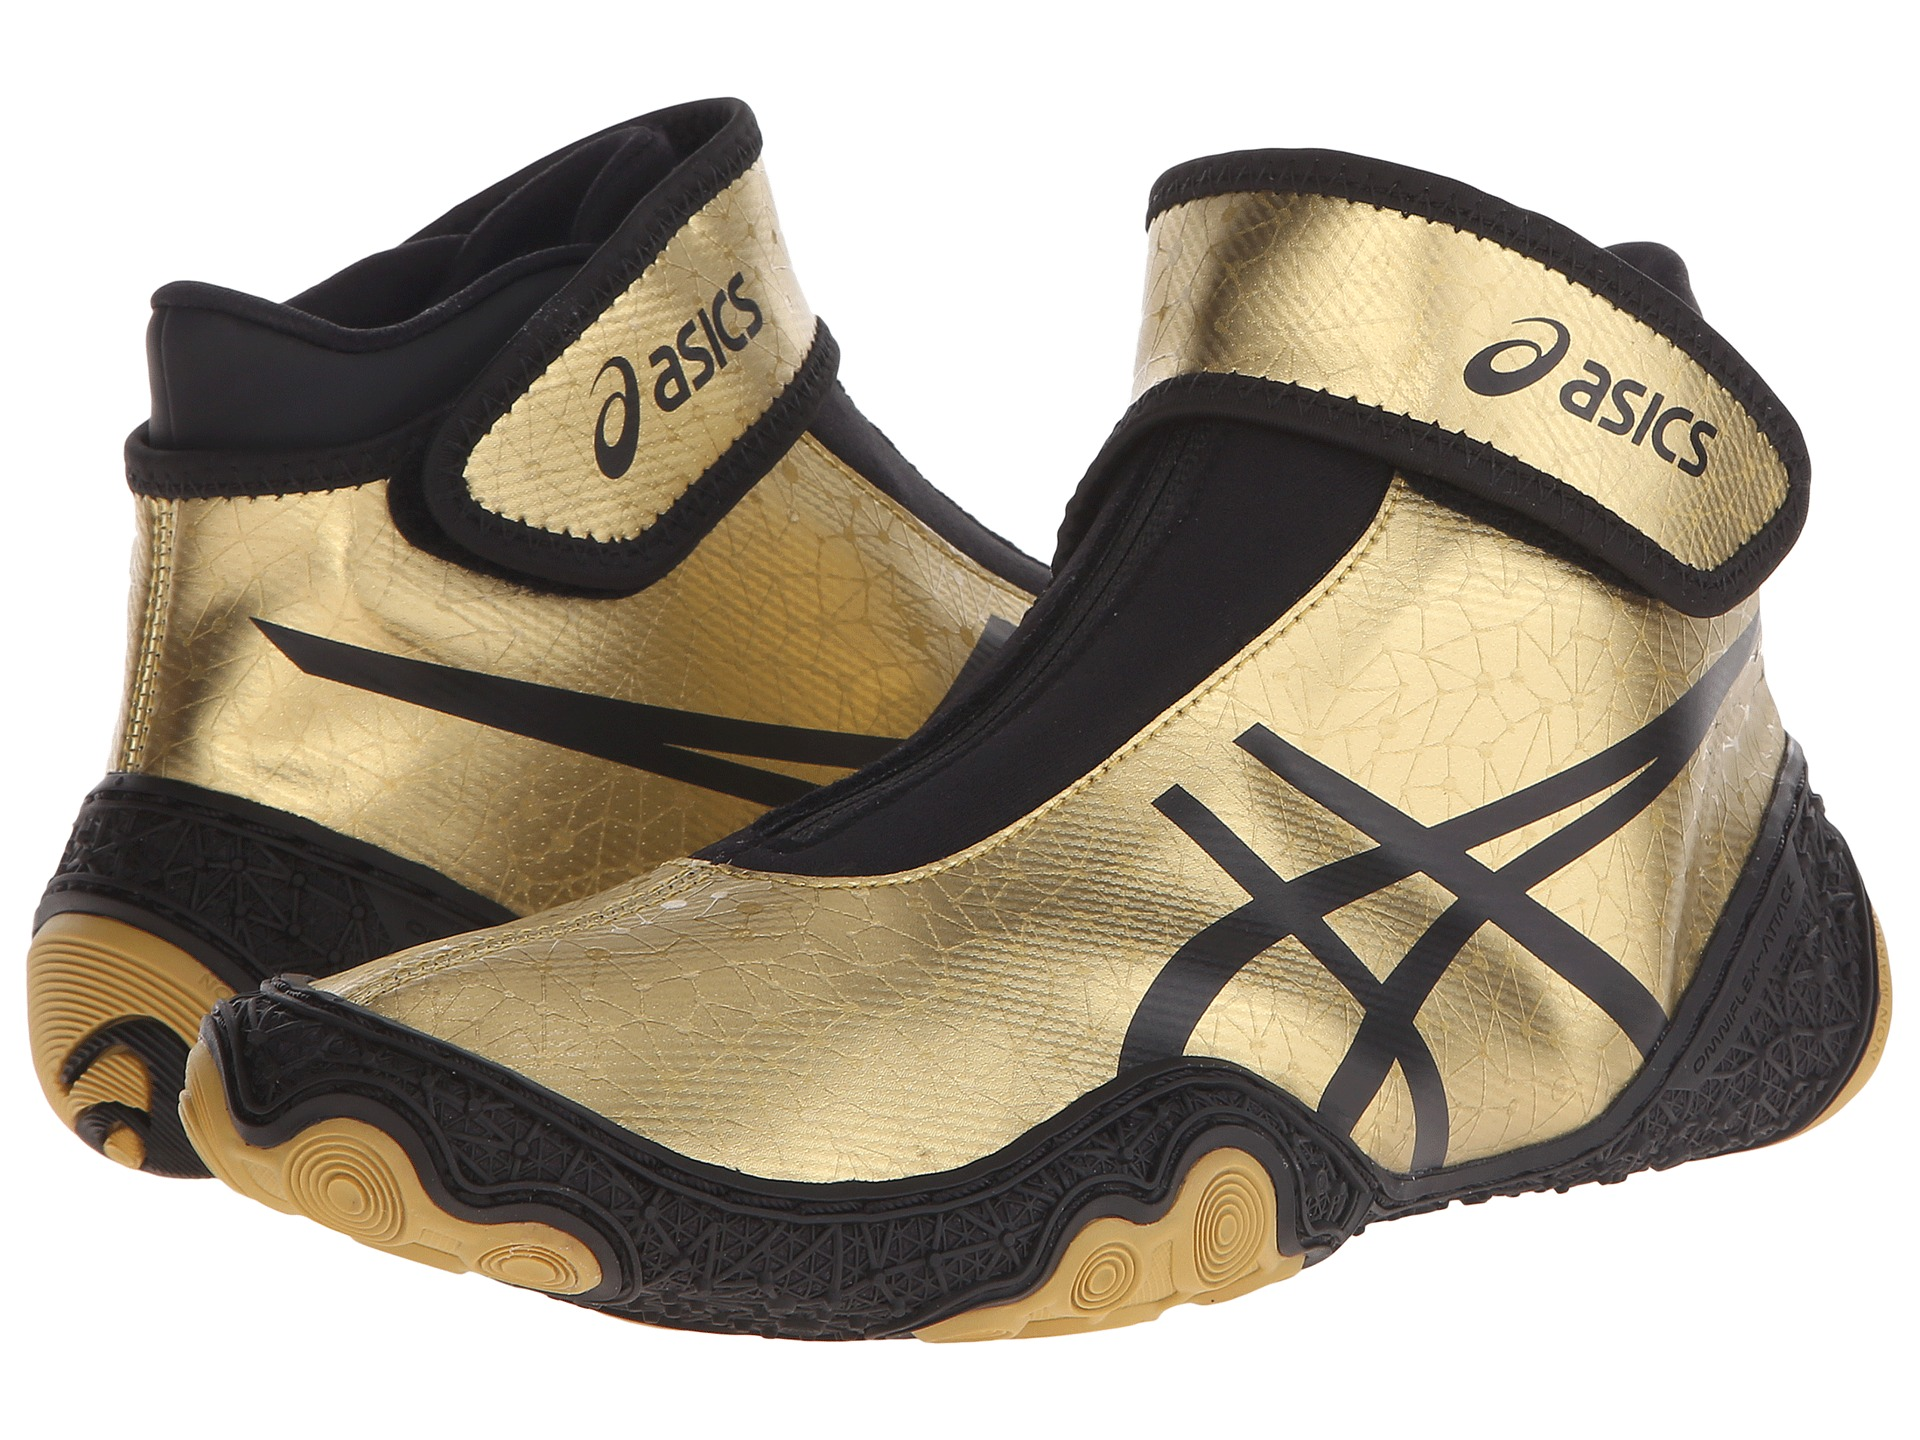 Black And Gold Youth Wrestling Shoes